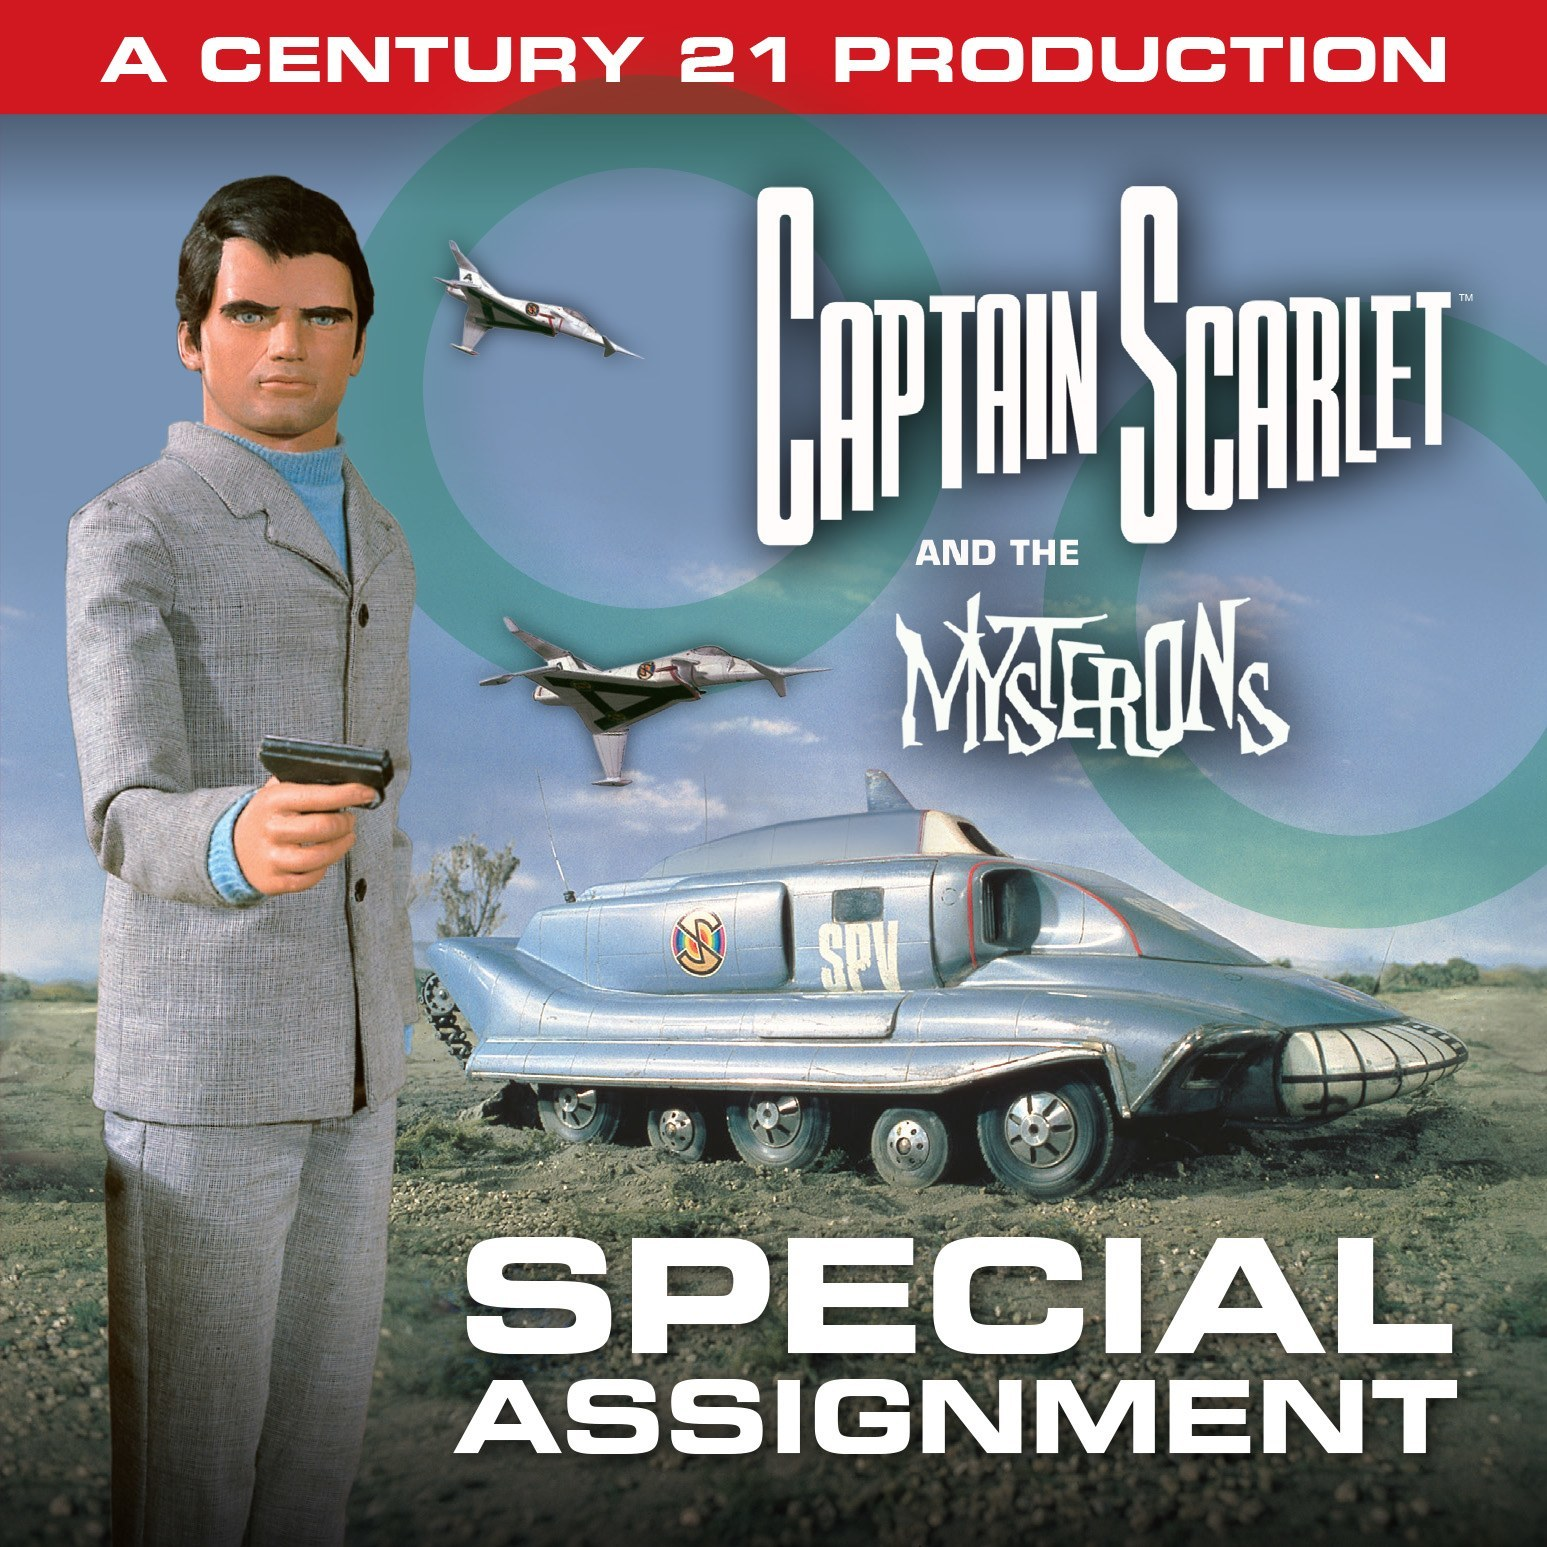 Captain Scarlet mini album - Big Ben Strikes Again